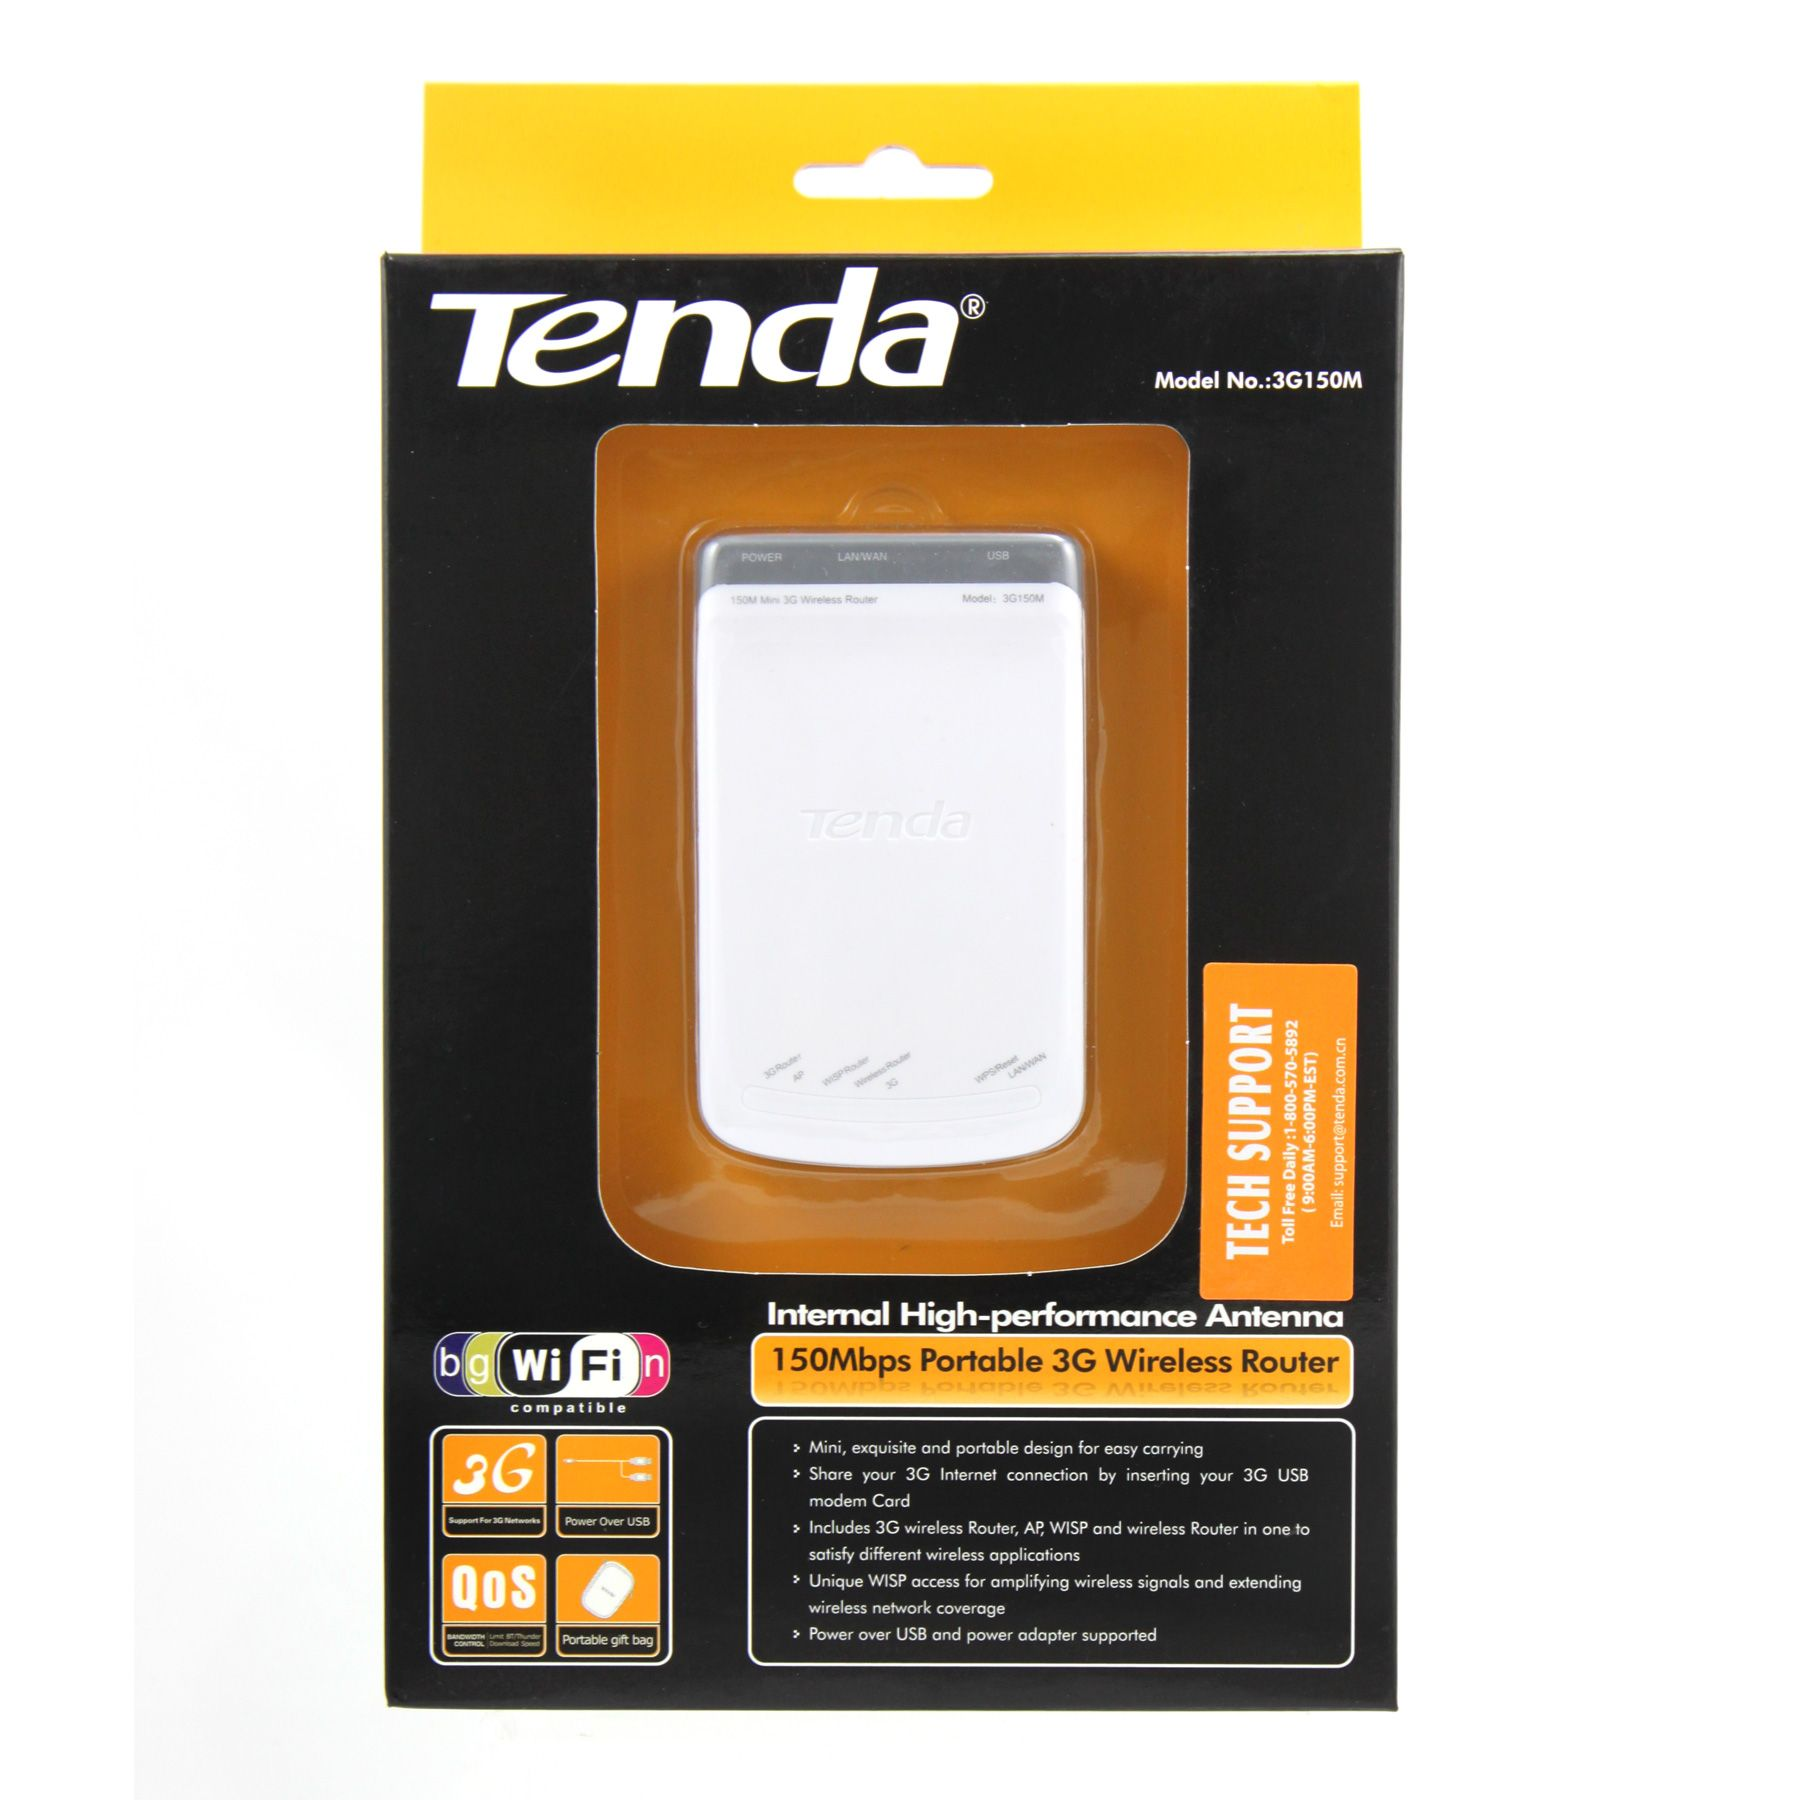 Tenda&#174 3G150M 150Mbps Portable Wireless N 3G Router